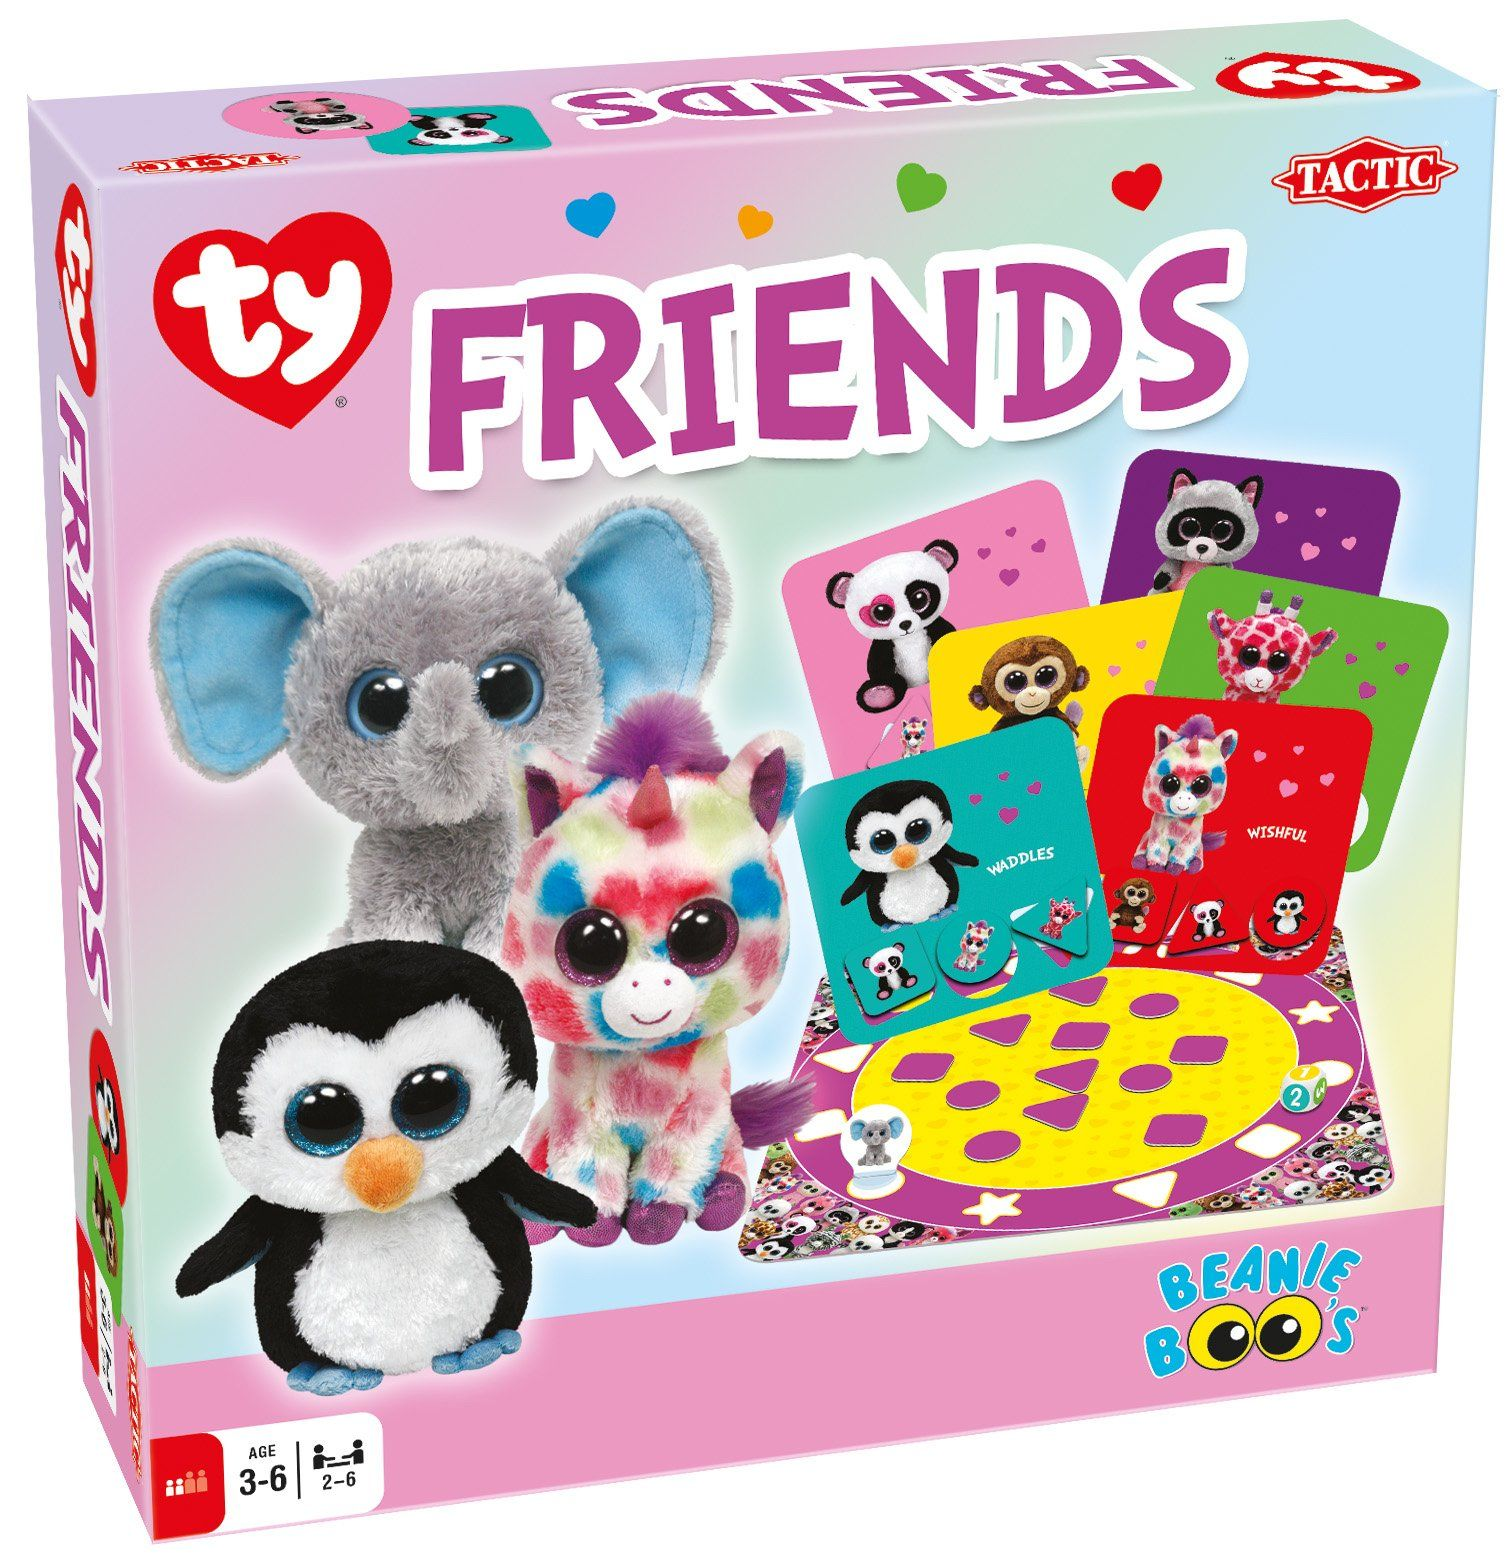 Ty Beanie Boos Friends Board Game Kids Pinterest Beanie Boos